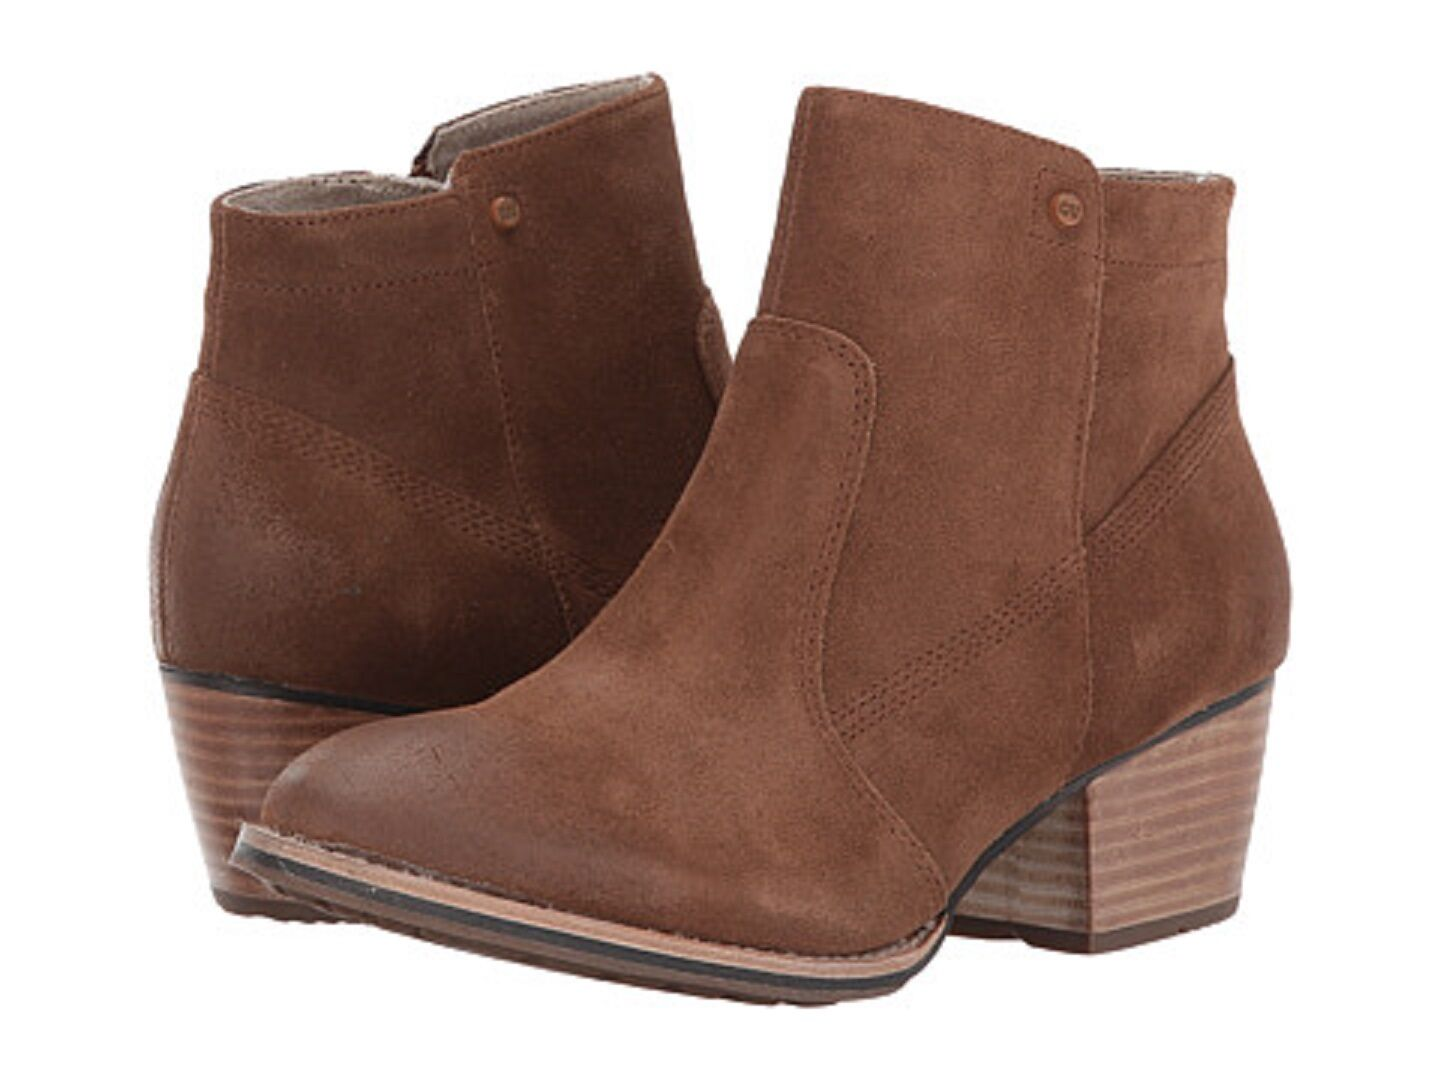 CATERPILLAR P309968 CIDER Wmn's (M) Brown Suede Ankle Bootie